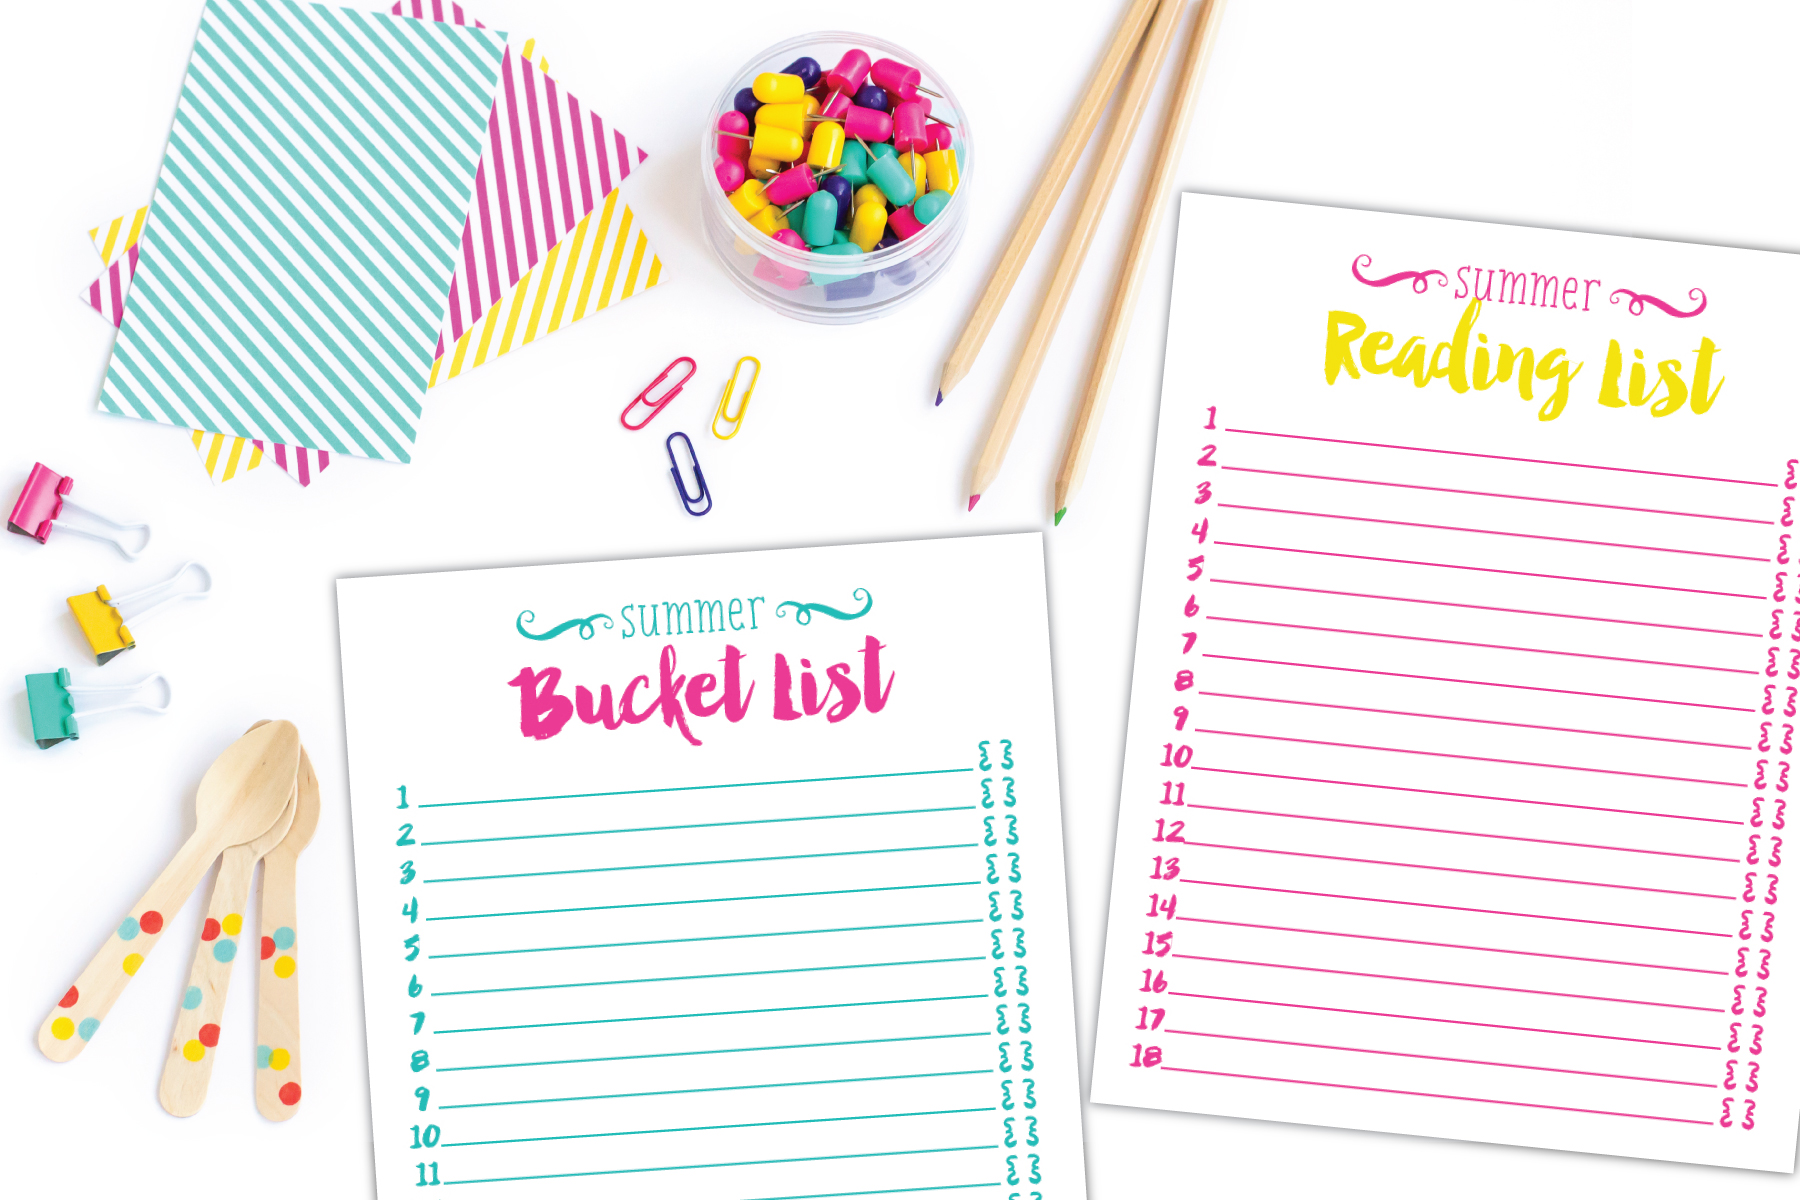 photograph regarding Summer Bucket List Printable called Free of charge Summer months Bucket Record Printable - I Middle Planners